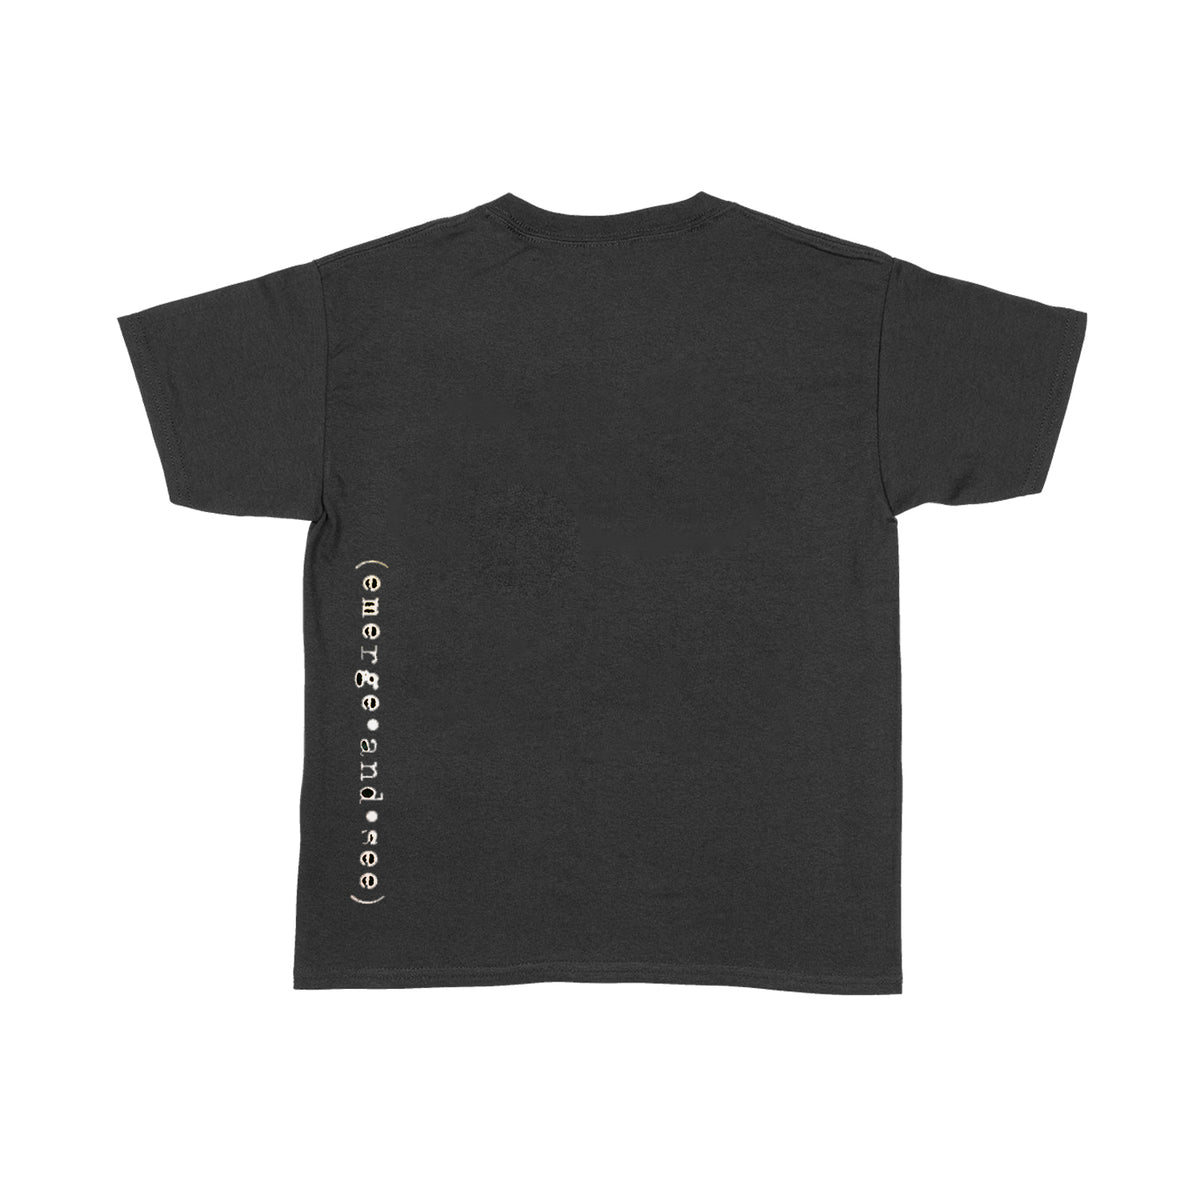 Innervision Black T-Shirt (Pre-order) + Download